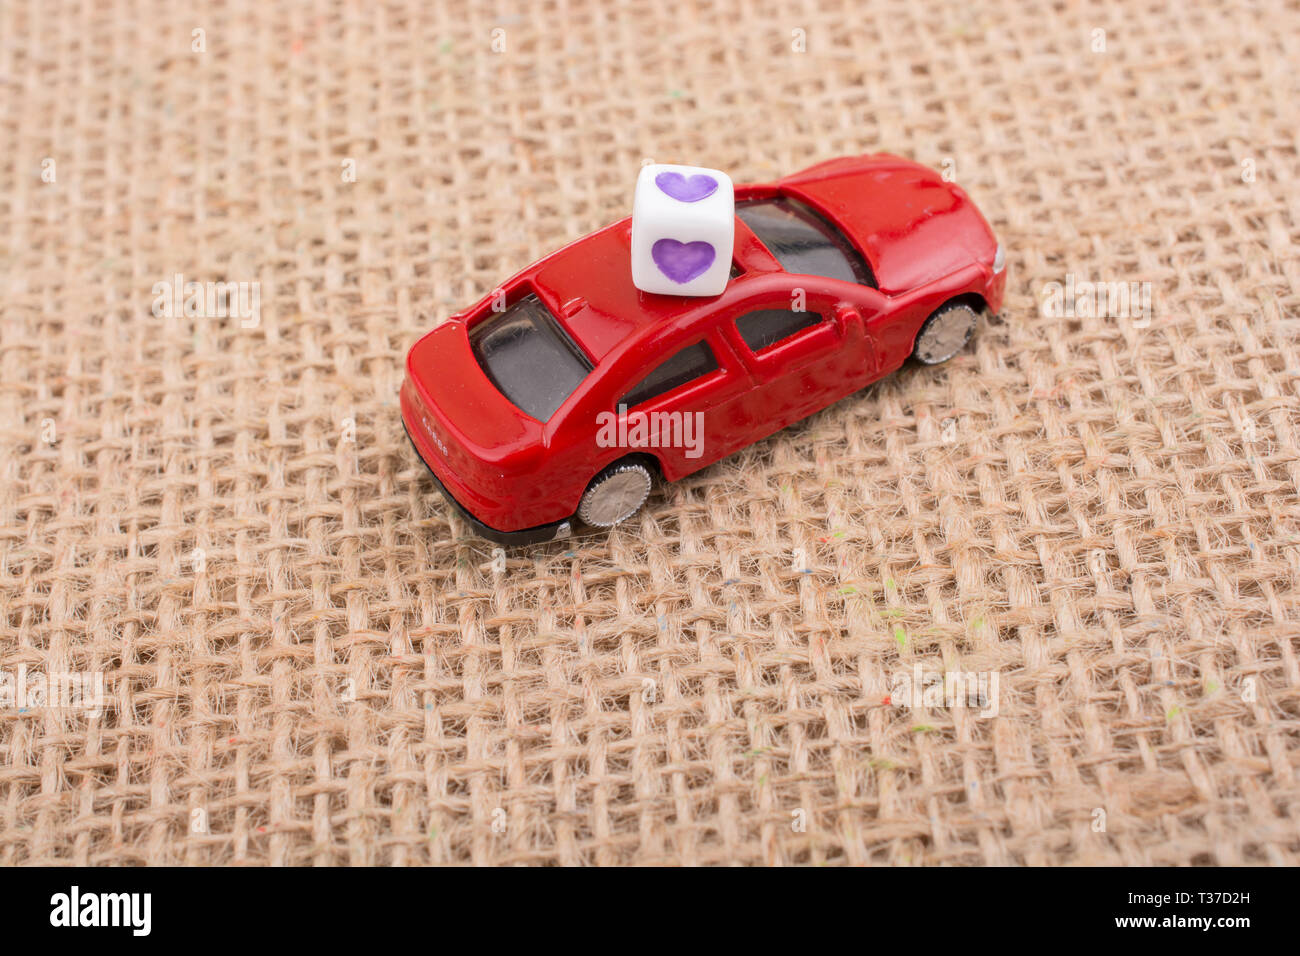 Love cube on a red toy car on a linen canvas - Stock Image